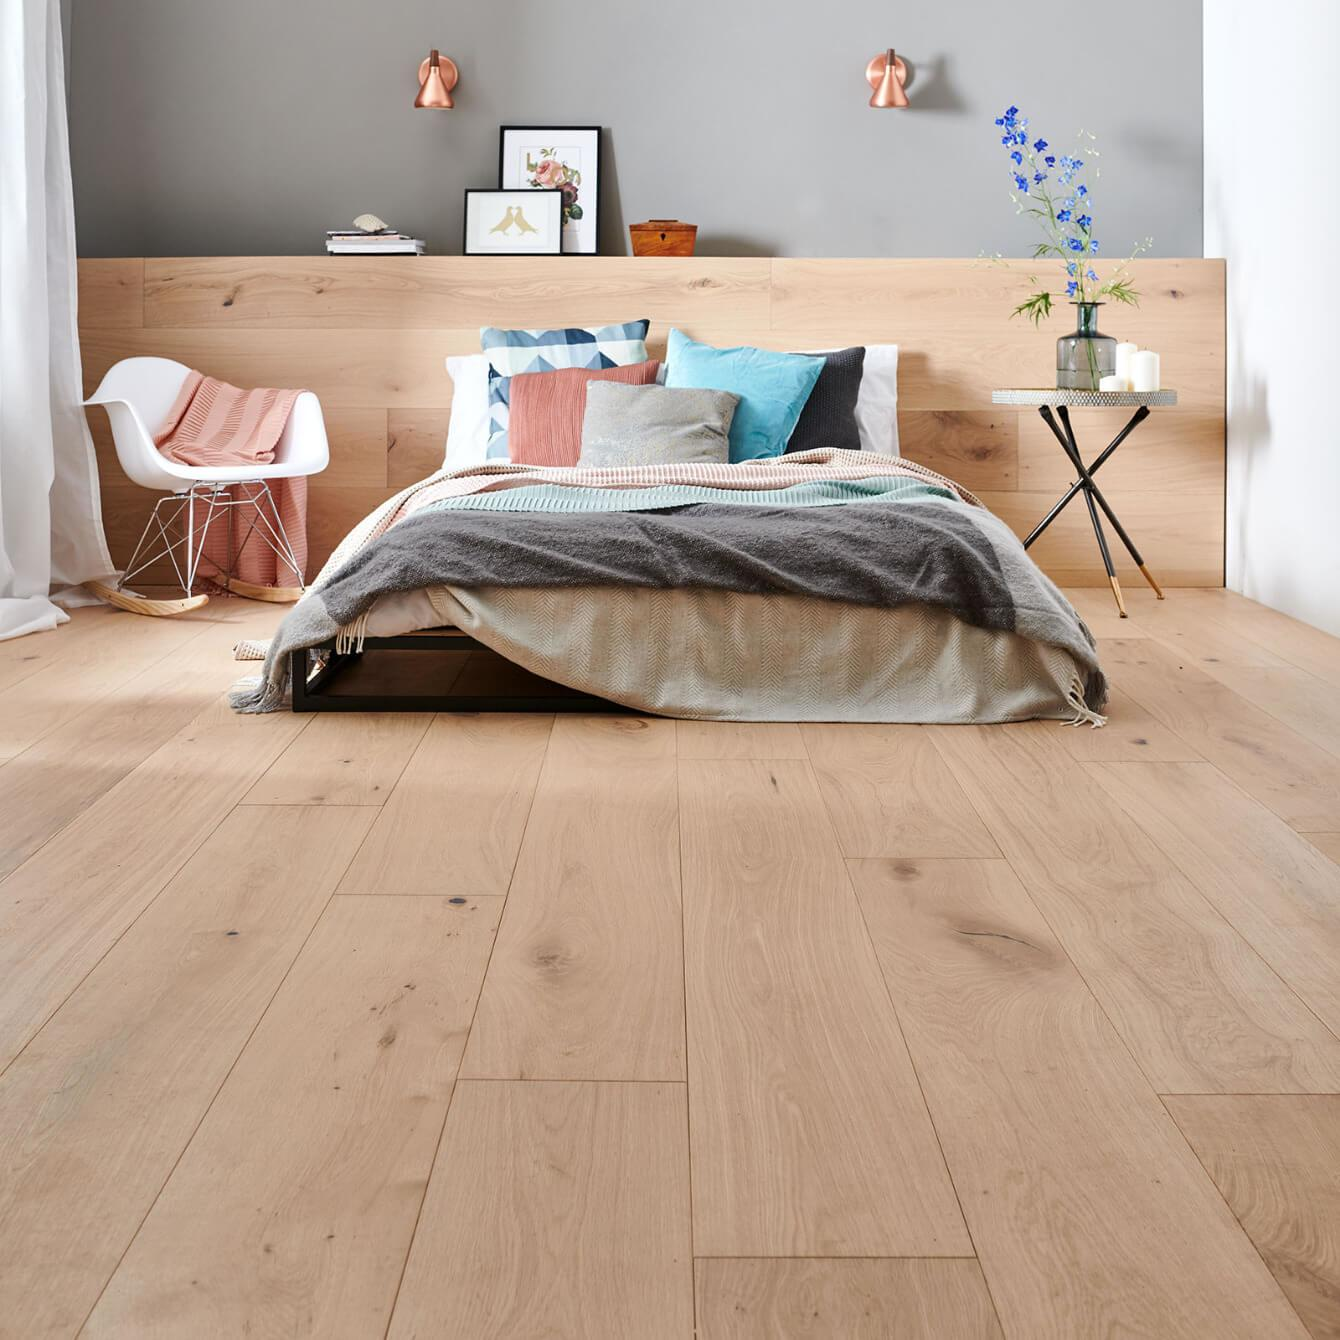 Woodpecker Harlech Raw Oak Lacquered Engineered Wood Flooring 190mm 35-HRA-001